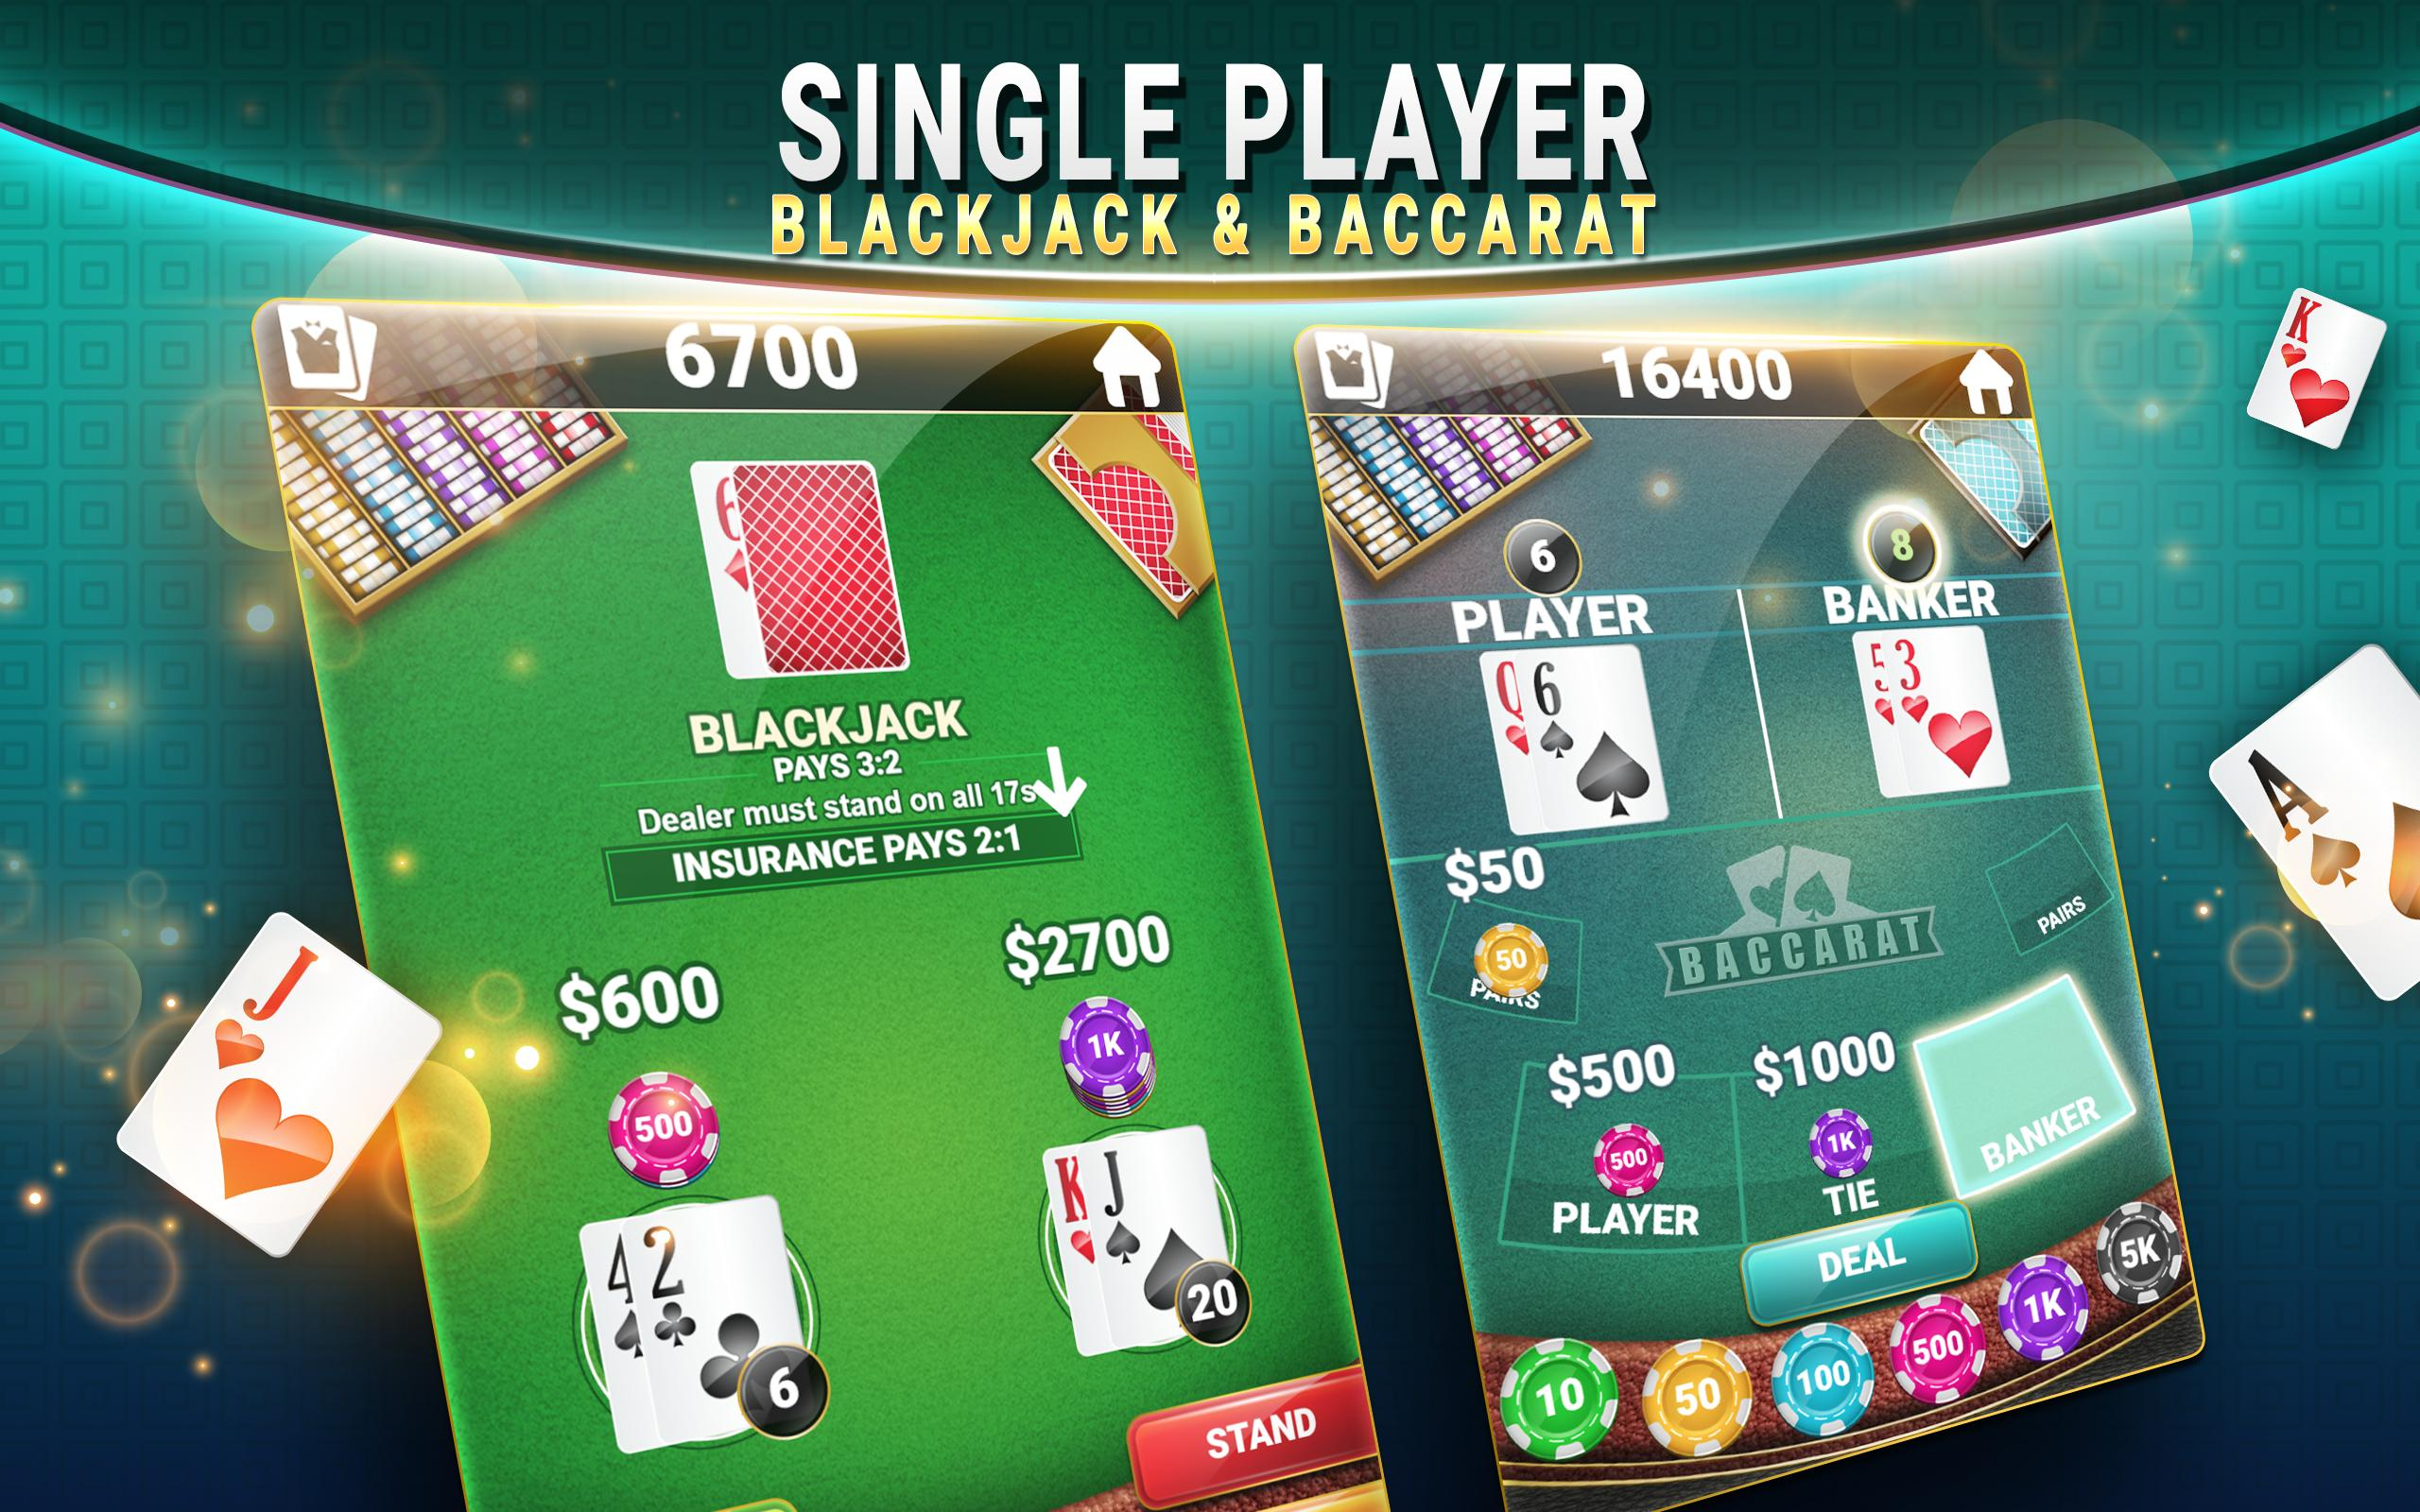 Easy methods to Make Your Product Stand Out With Poker